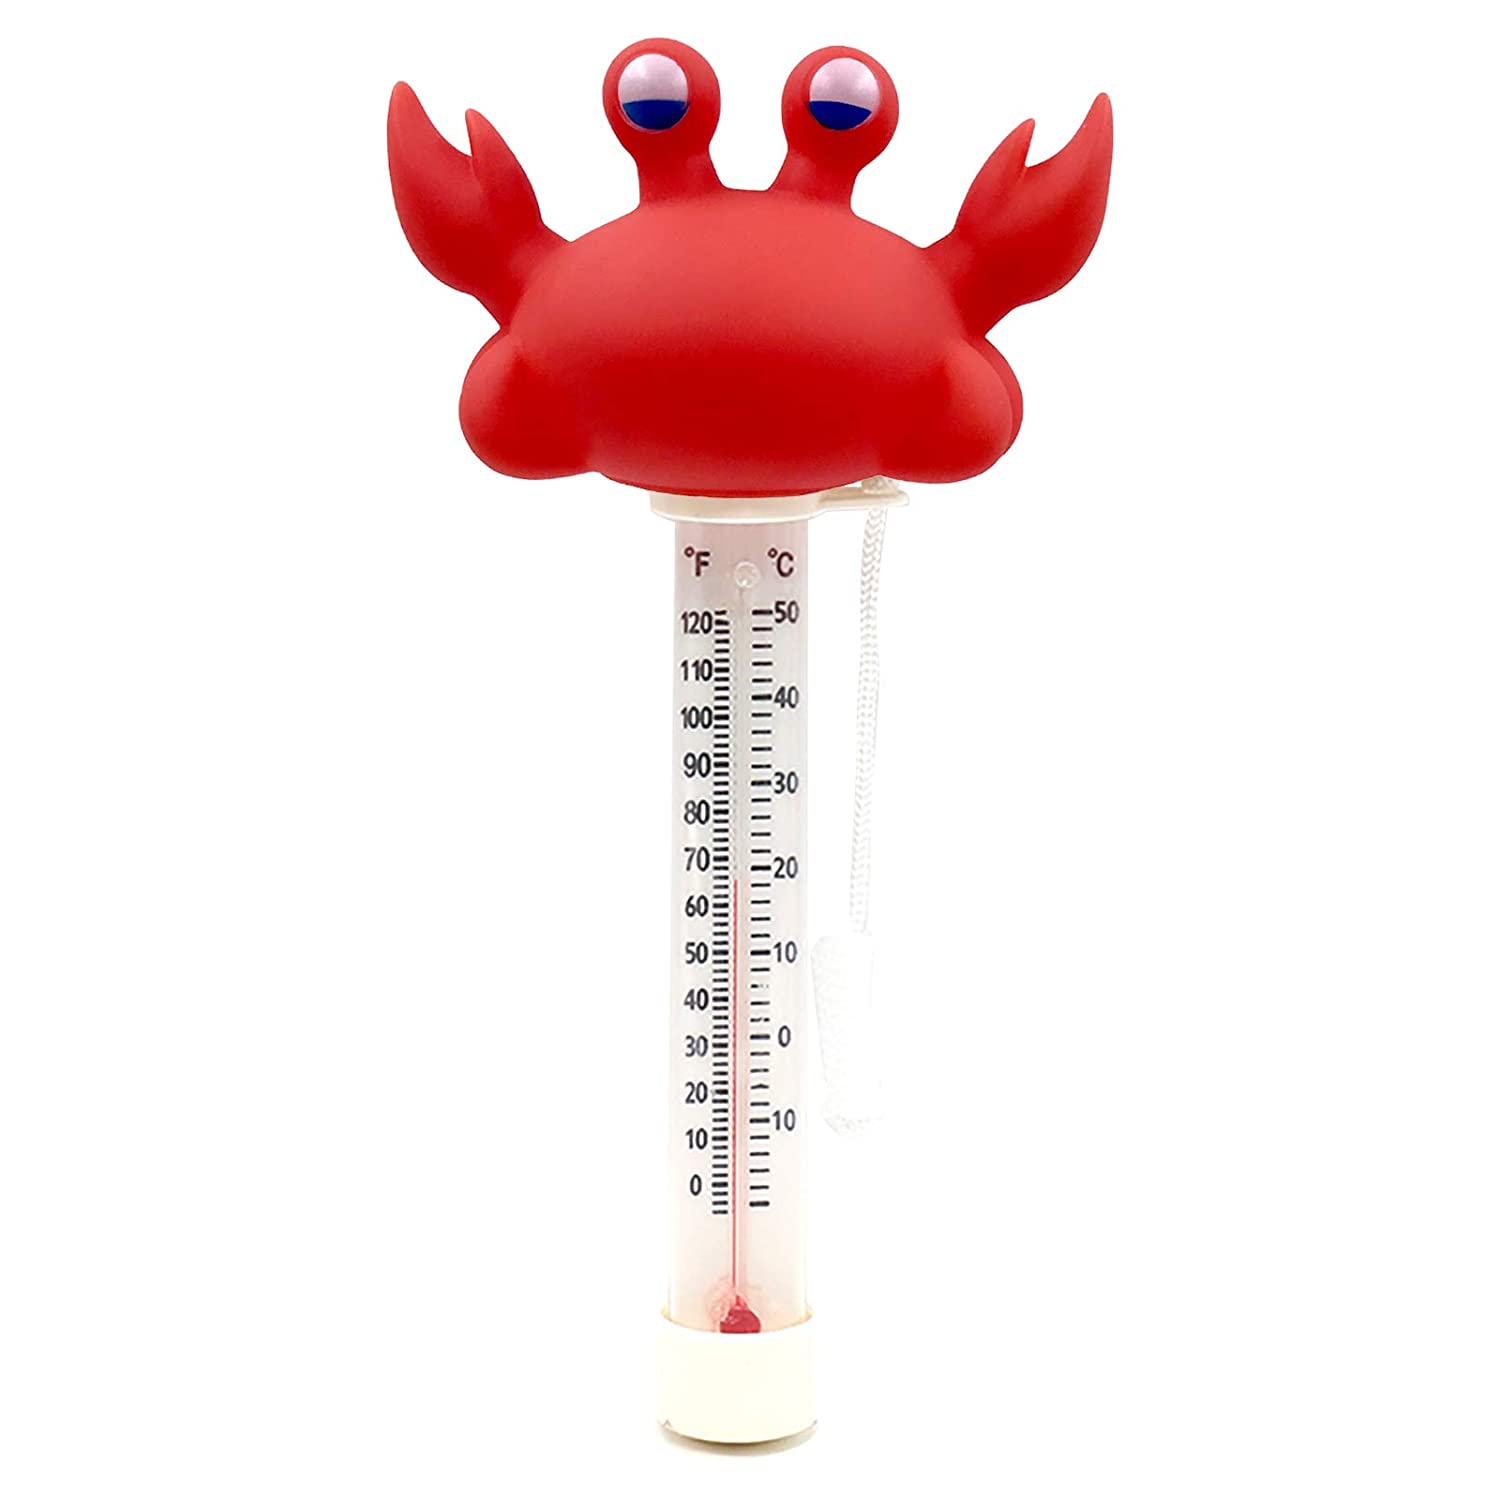 Max 55% OFF XY-WQ Floating Pool Thermometer Crab Size with Large Read Easy Product